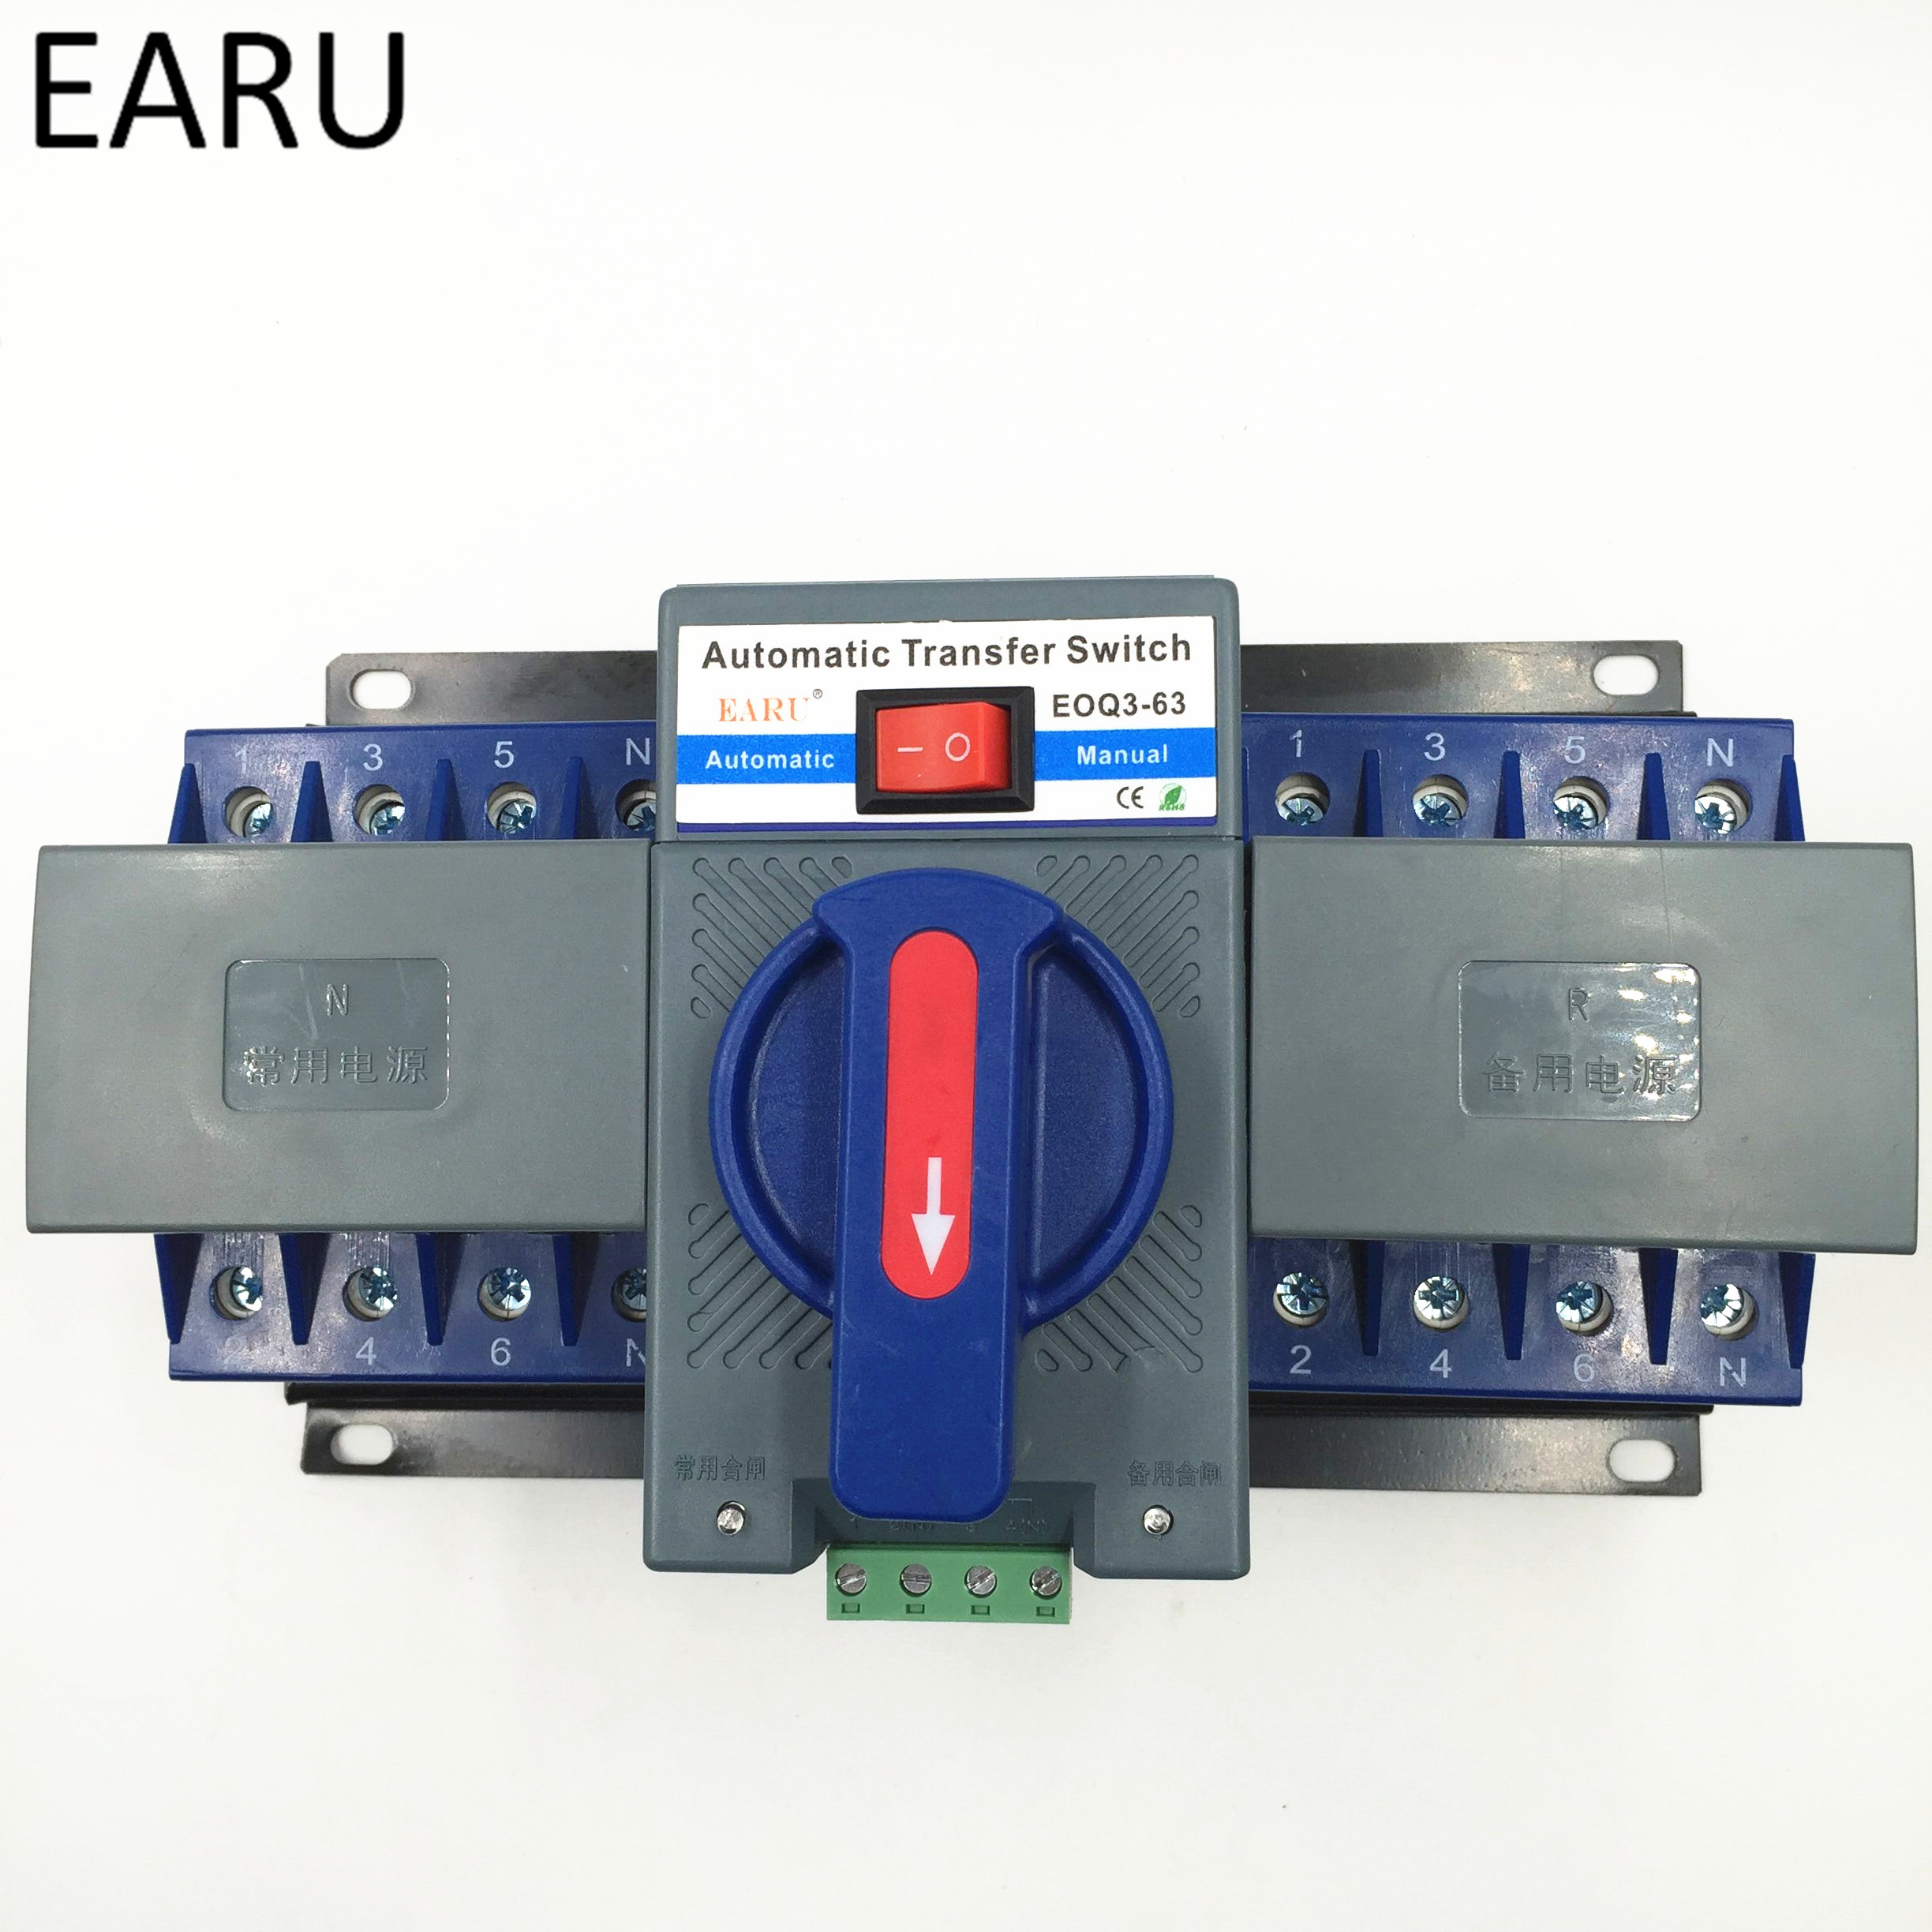 4p 63a 380v Mcb Type Dual Power Automatic Transfer Switch Ats Ates Auto Shut Off Tone Generator Circuit For Photovoltaic Pv System Battery Ce Certificated